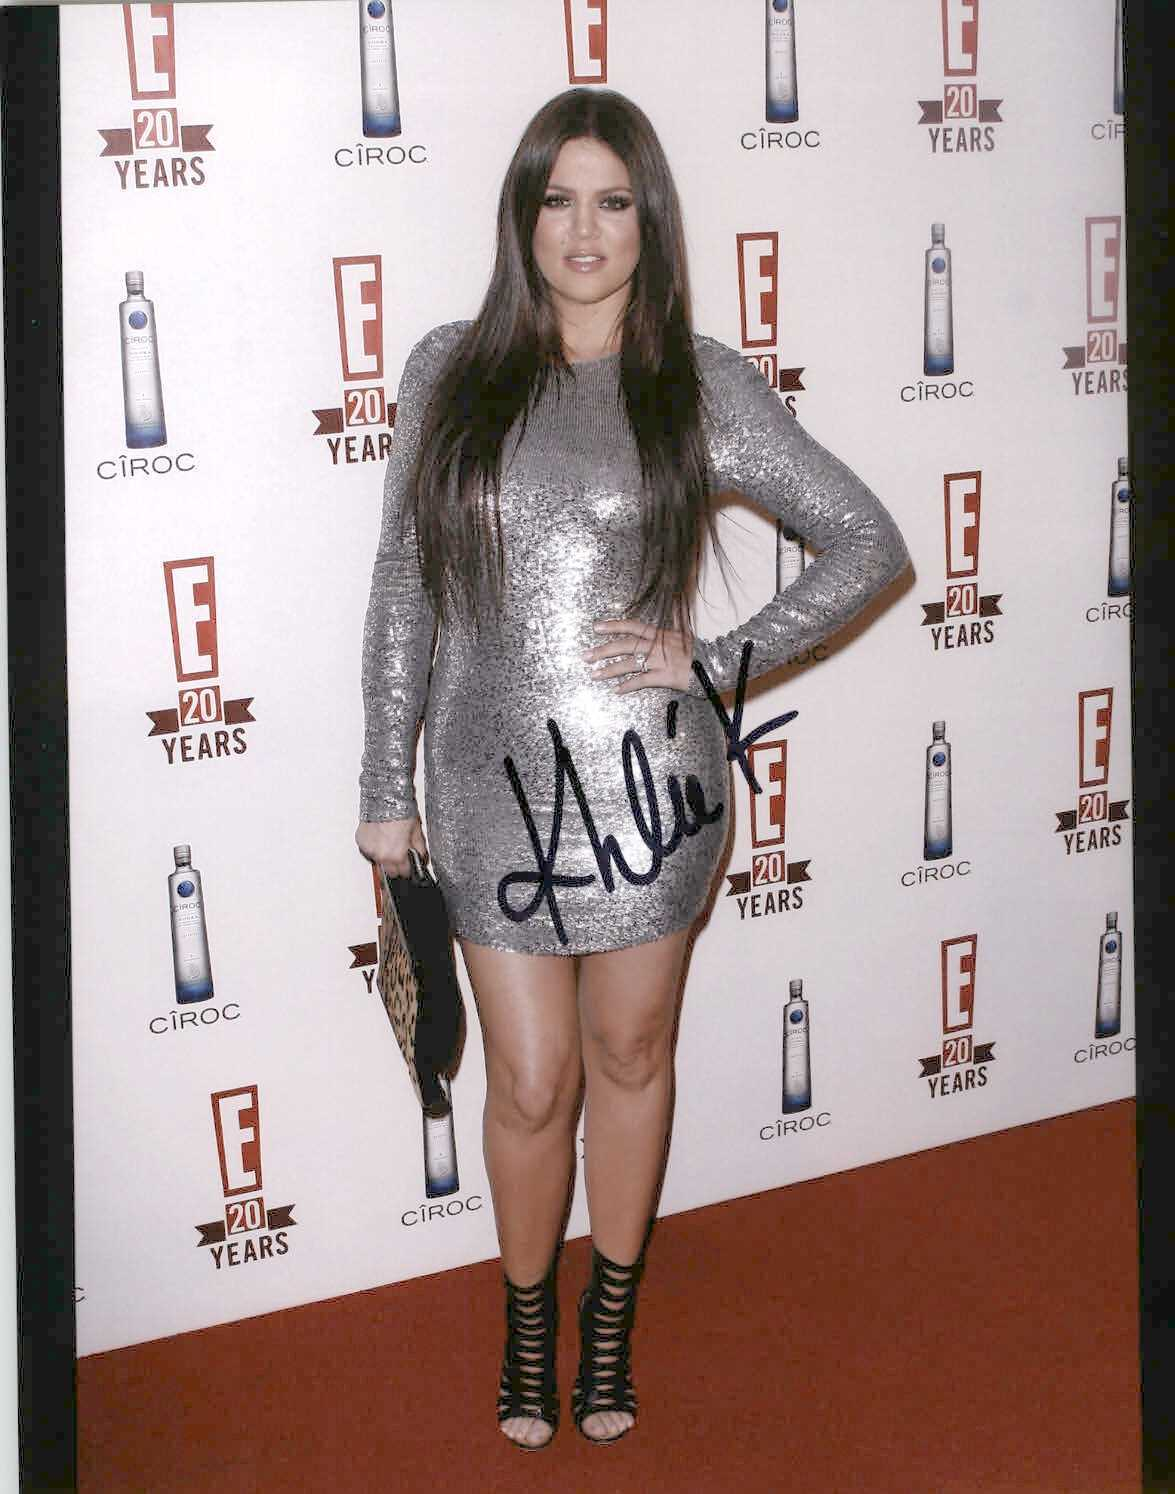 Primary image for Khloe Kardashian Signed Autographed Glossy 8x10 Photo